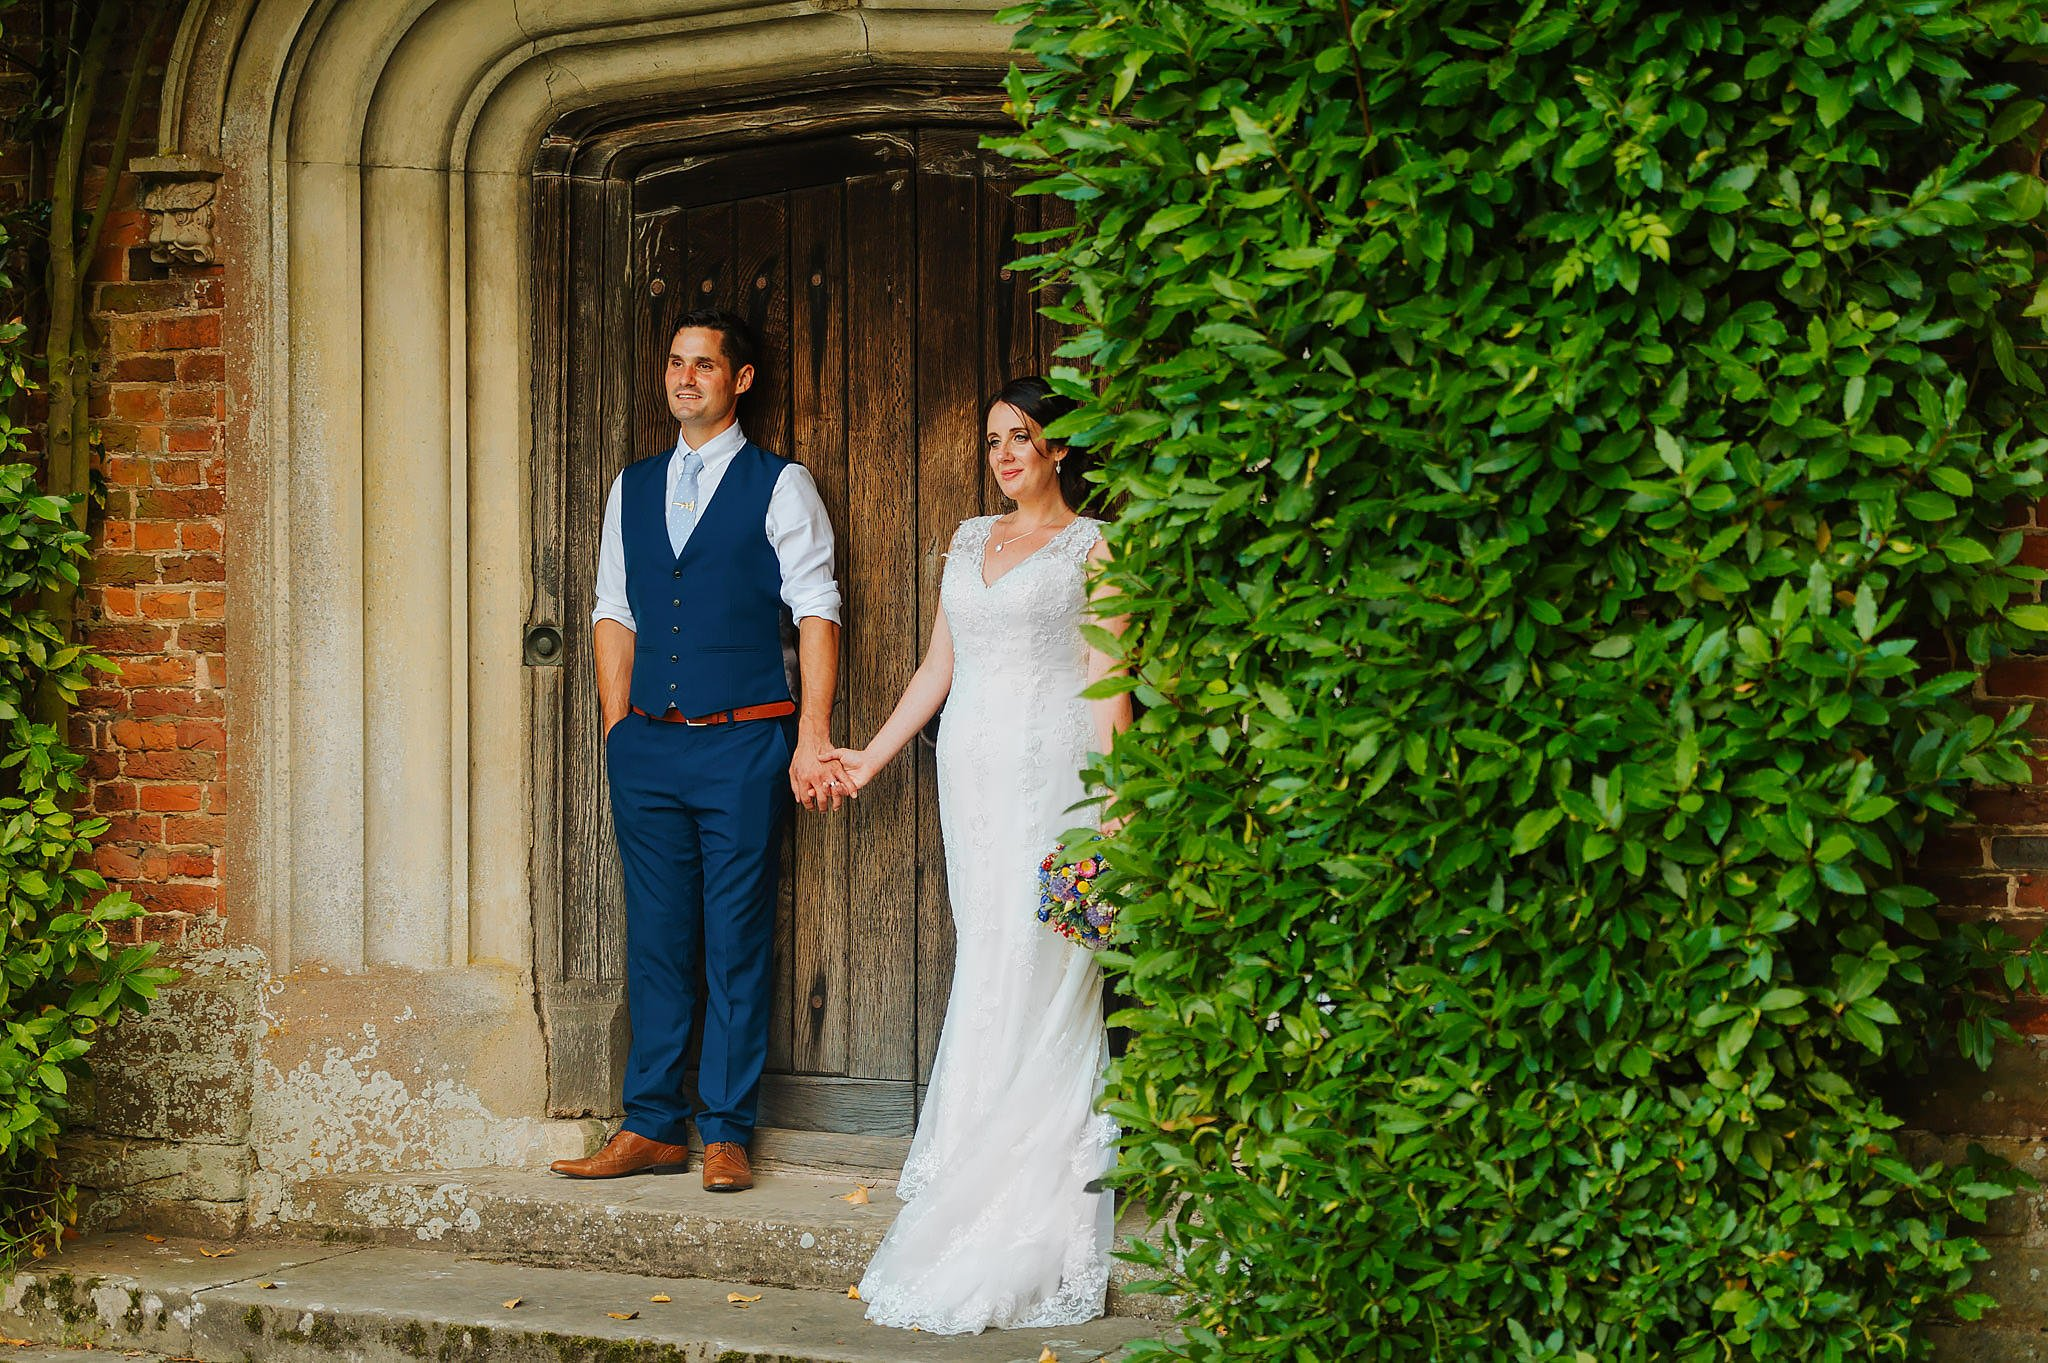 hellens manor wedding 145 - Wedding photography at Hellens Manor in Herefordshire, West Midlands | Shelley + Ian